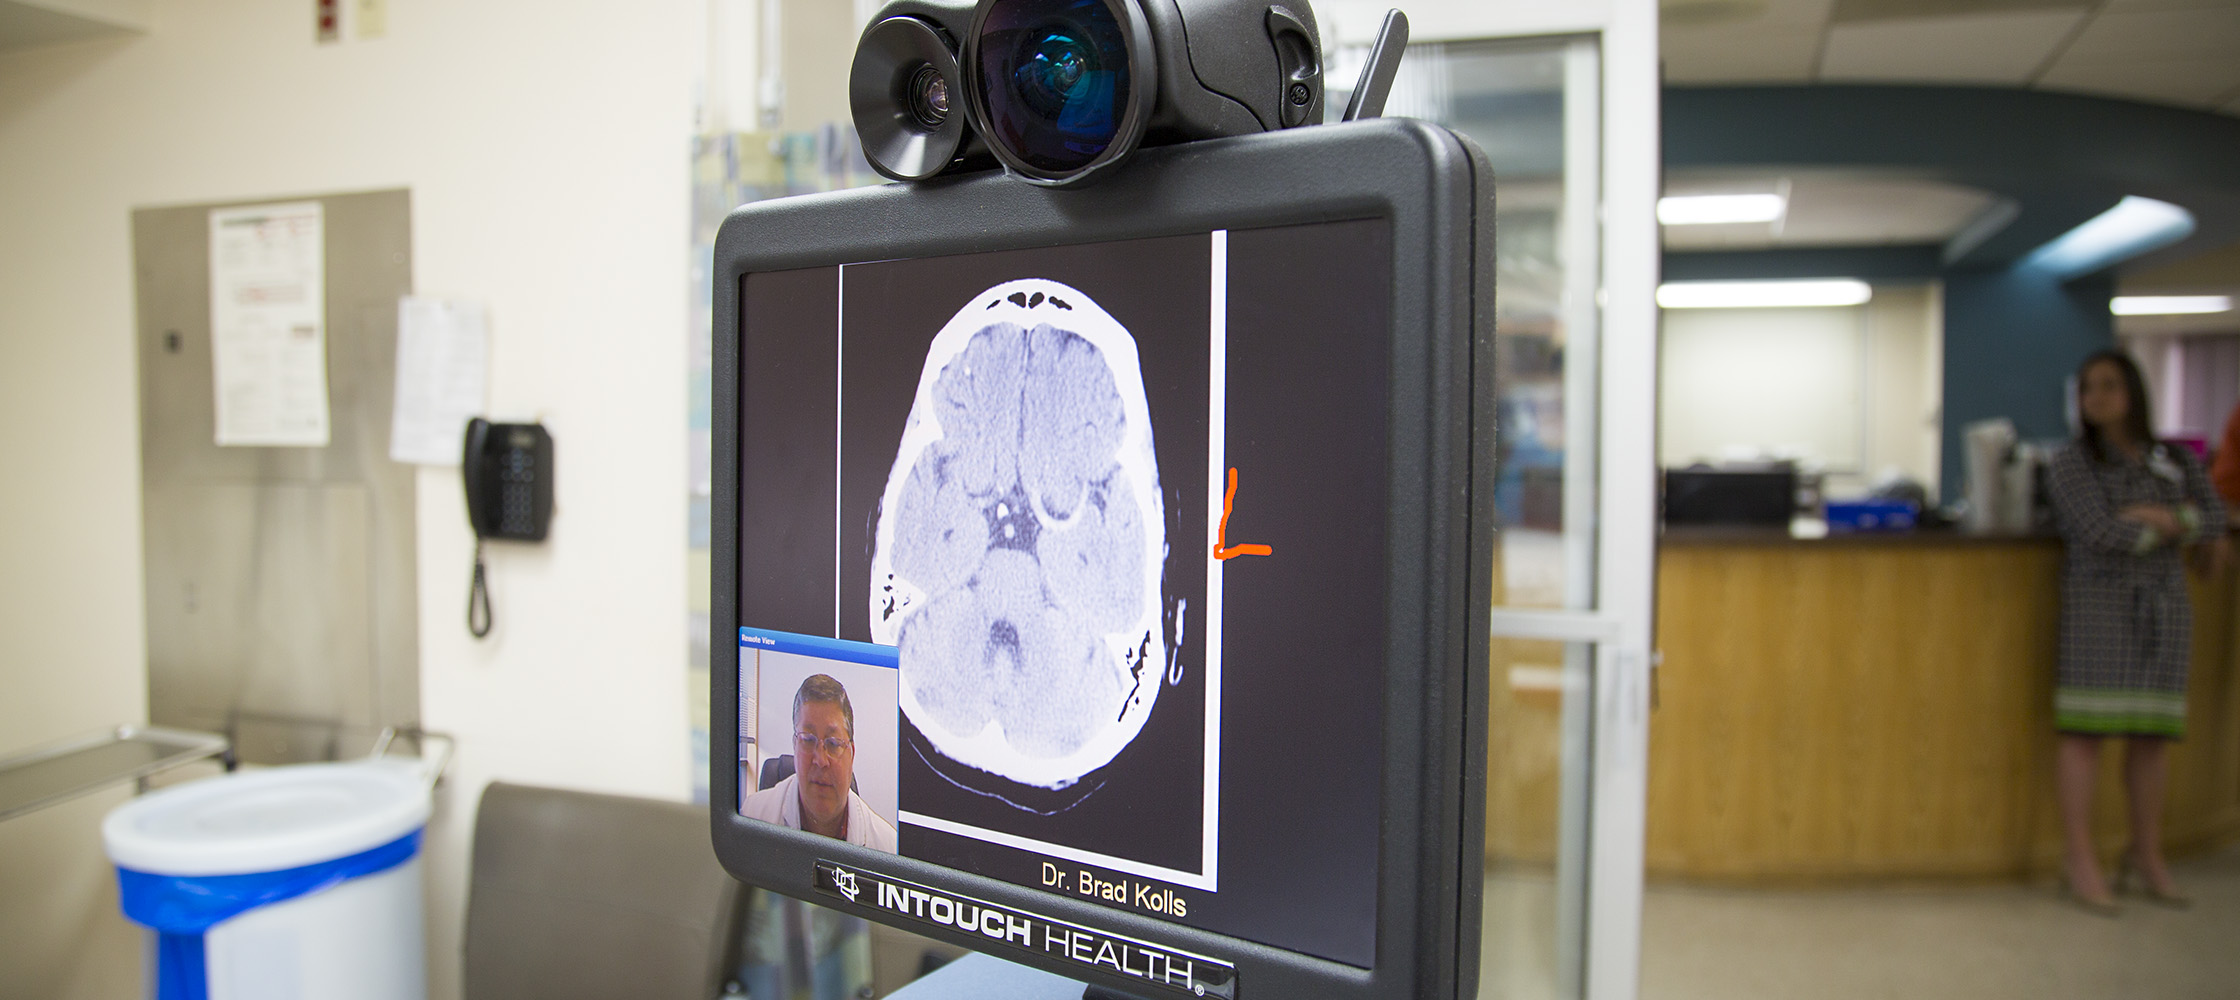 Duke neurologists view CT scans and discuss them with the patient via telemedicine.